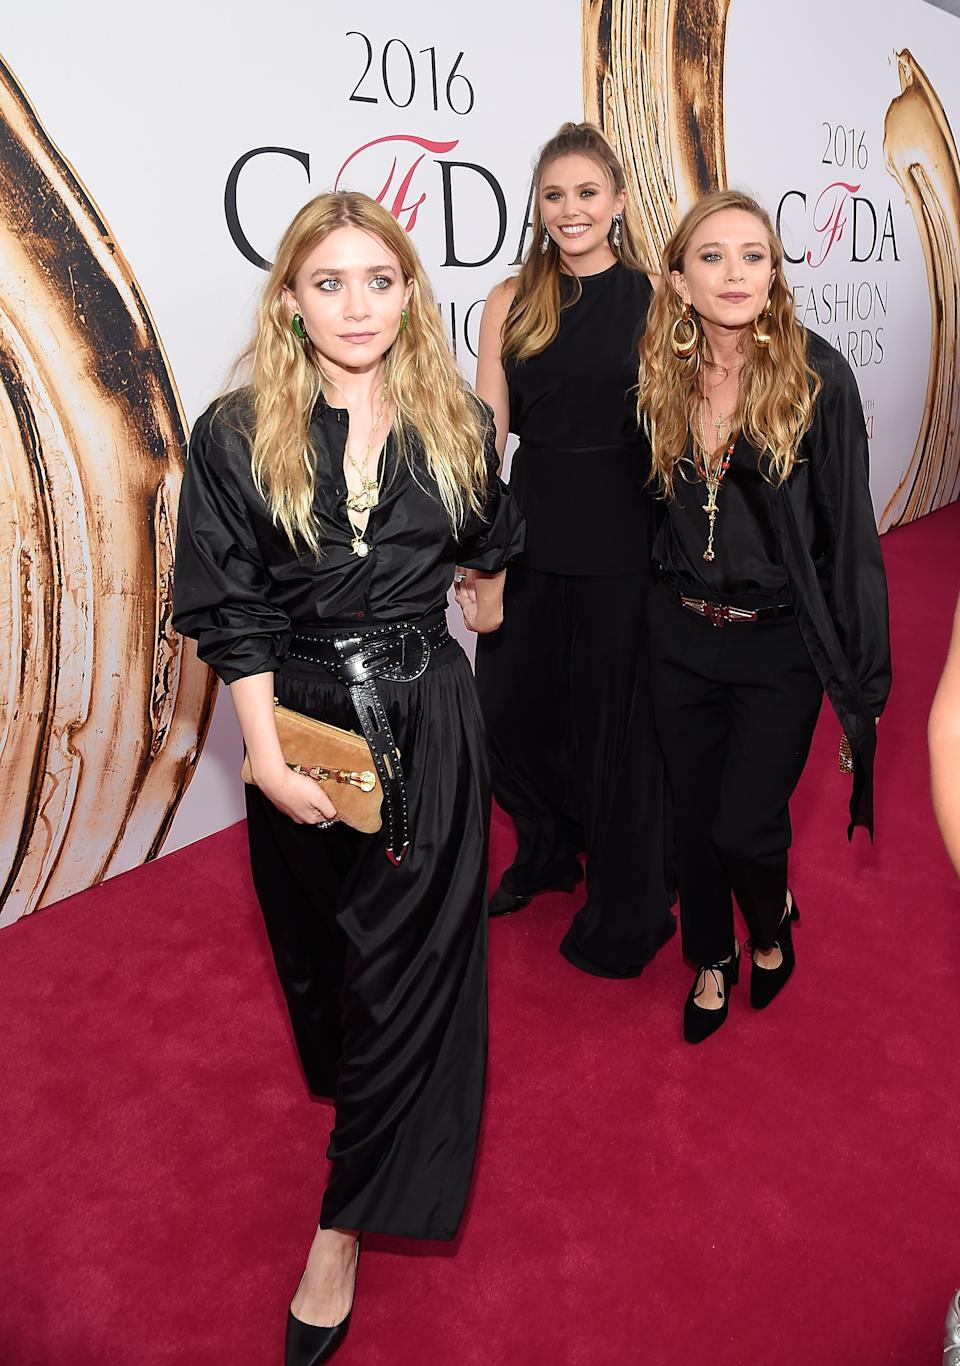 NEW YORK, NY - JUNE 06:  Ashley Olsen,  Elizabeth Olsen and Mary-Kate Olsen  attends the 2016 CFDA Fashion Awards at the Hammerstein Ballroom on June 6, 2016 in New York City.  (Photo by Kevin Mazur/WireImage)